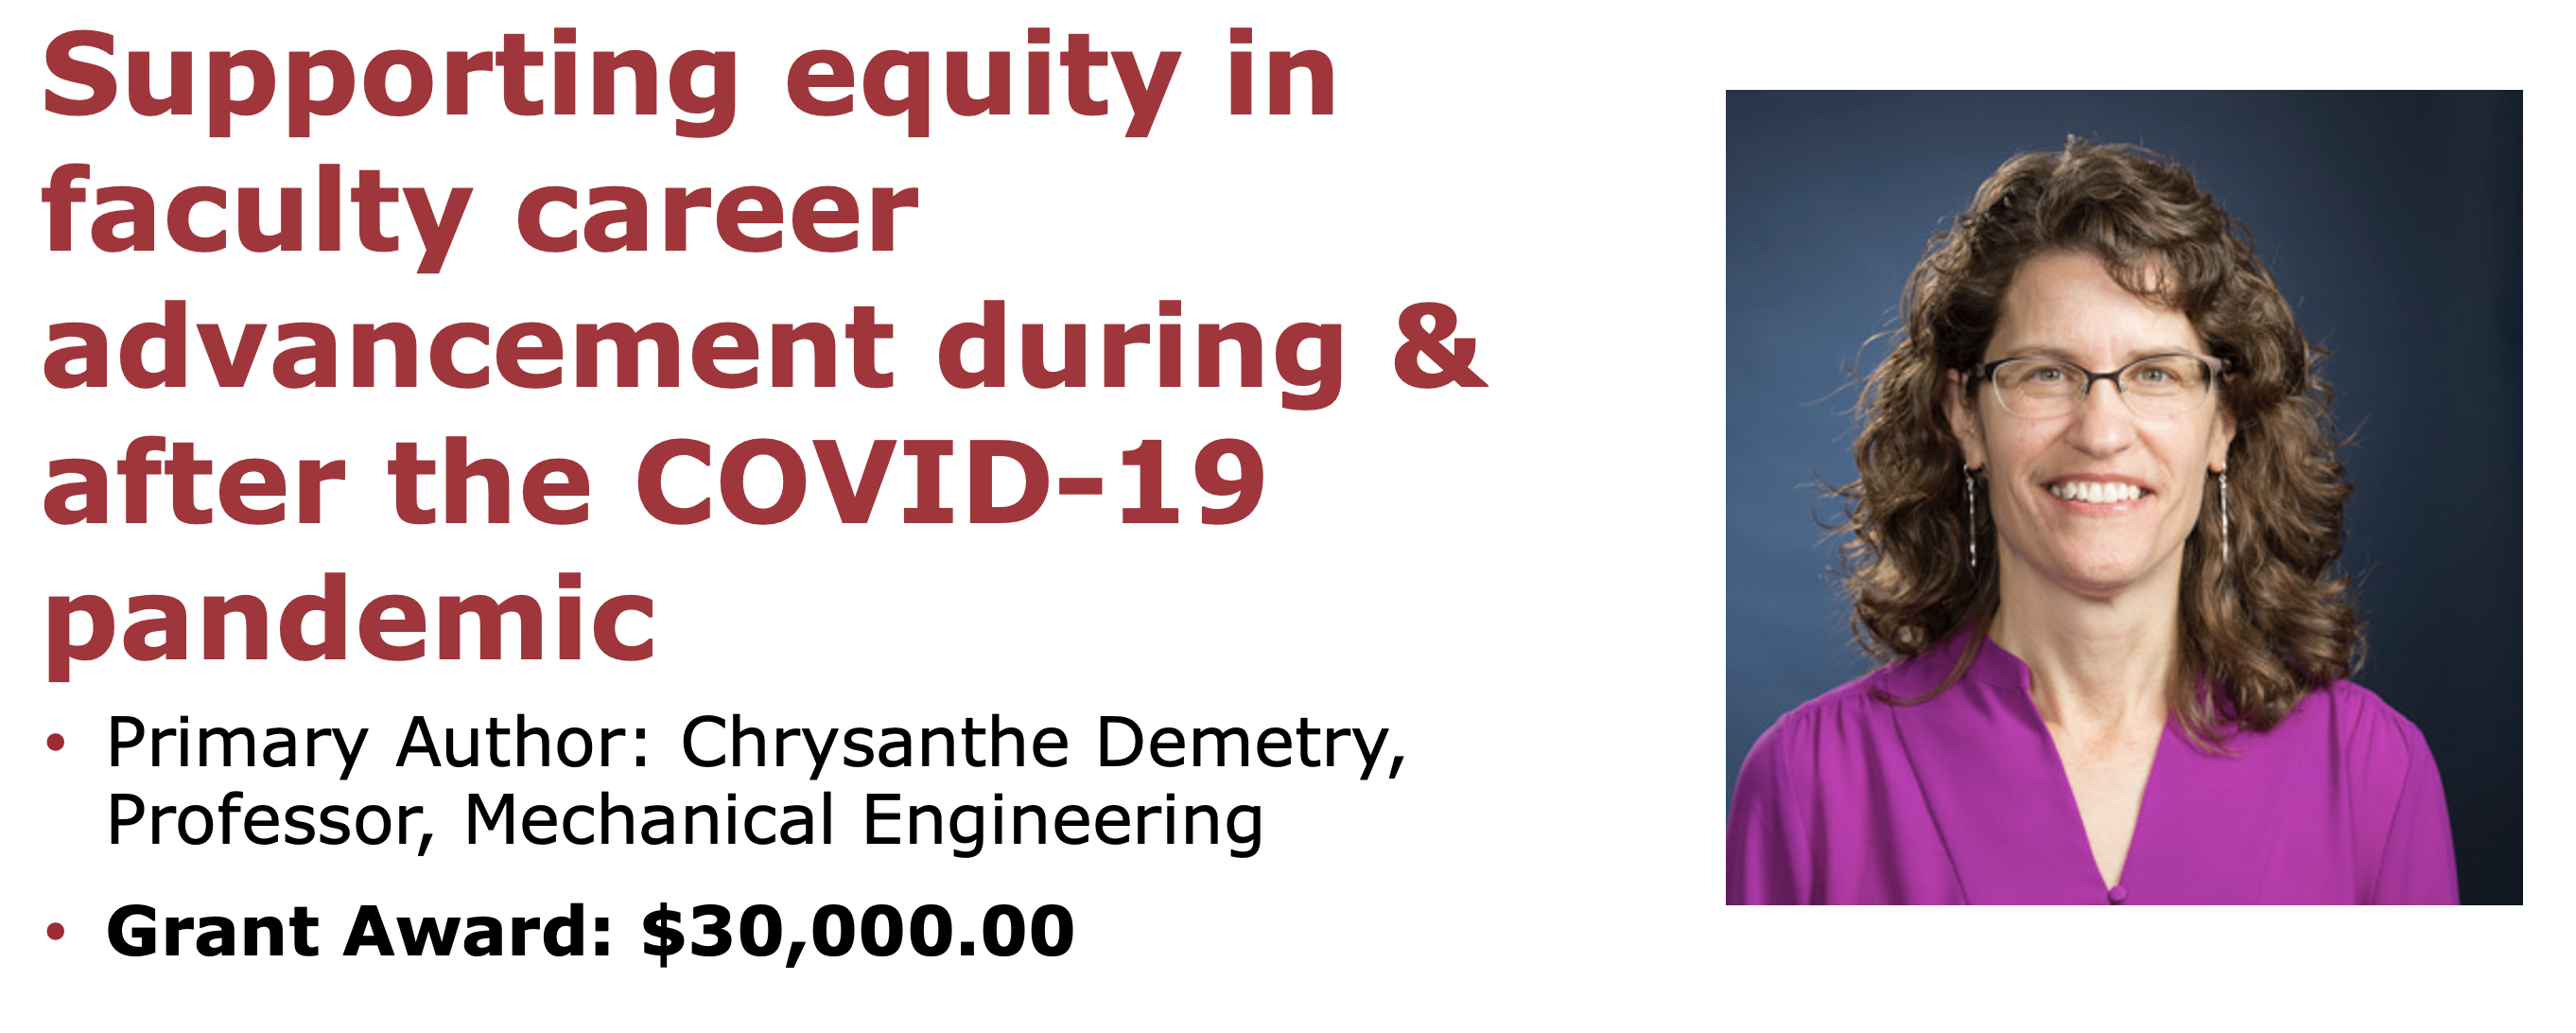 Supporting equity in faculty career advancement during & after the COVID-19 pandemic